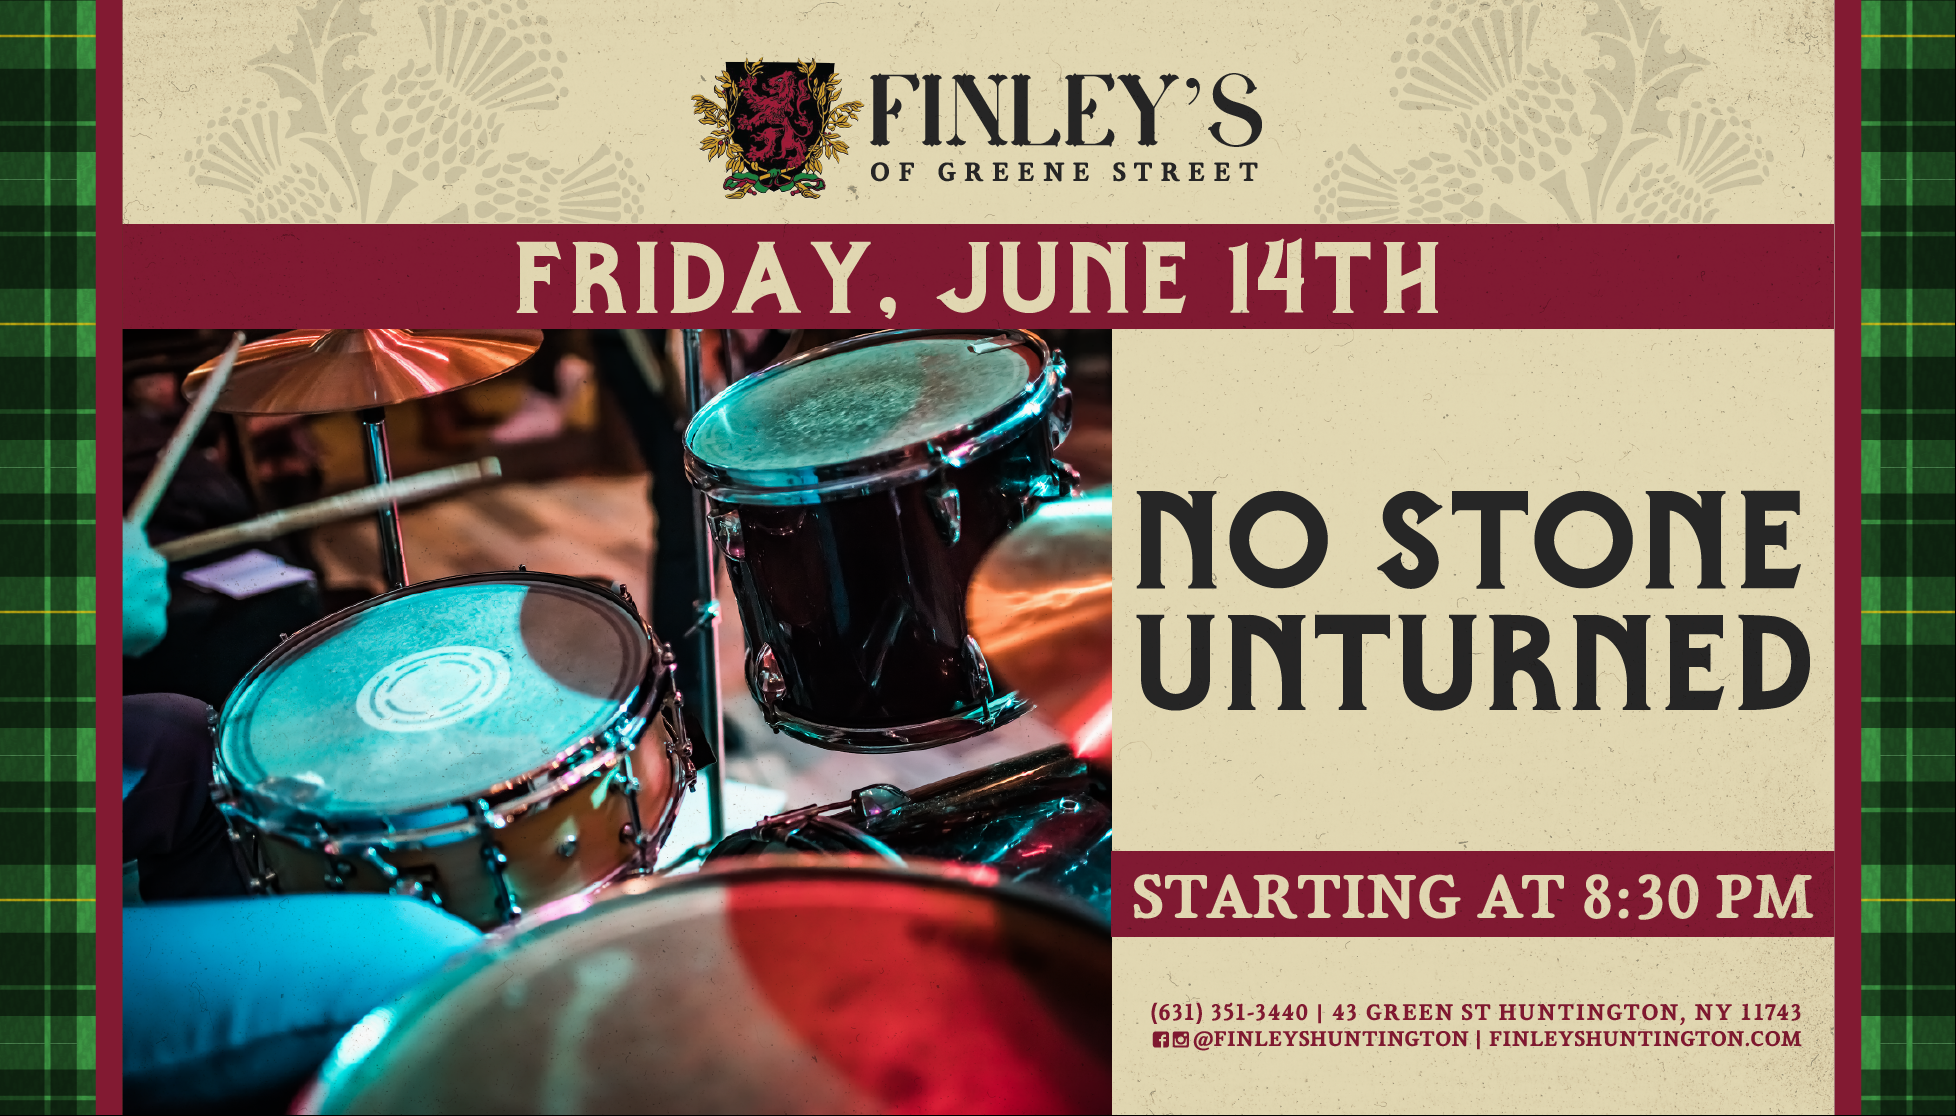 Flyer for live music with No Stone Unturned on June 14th at 8:30pm